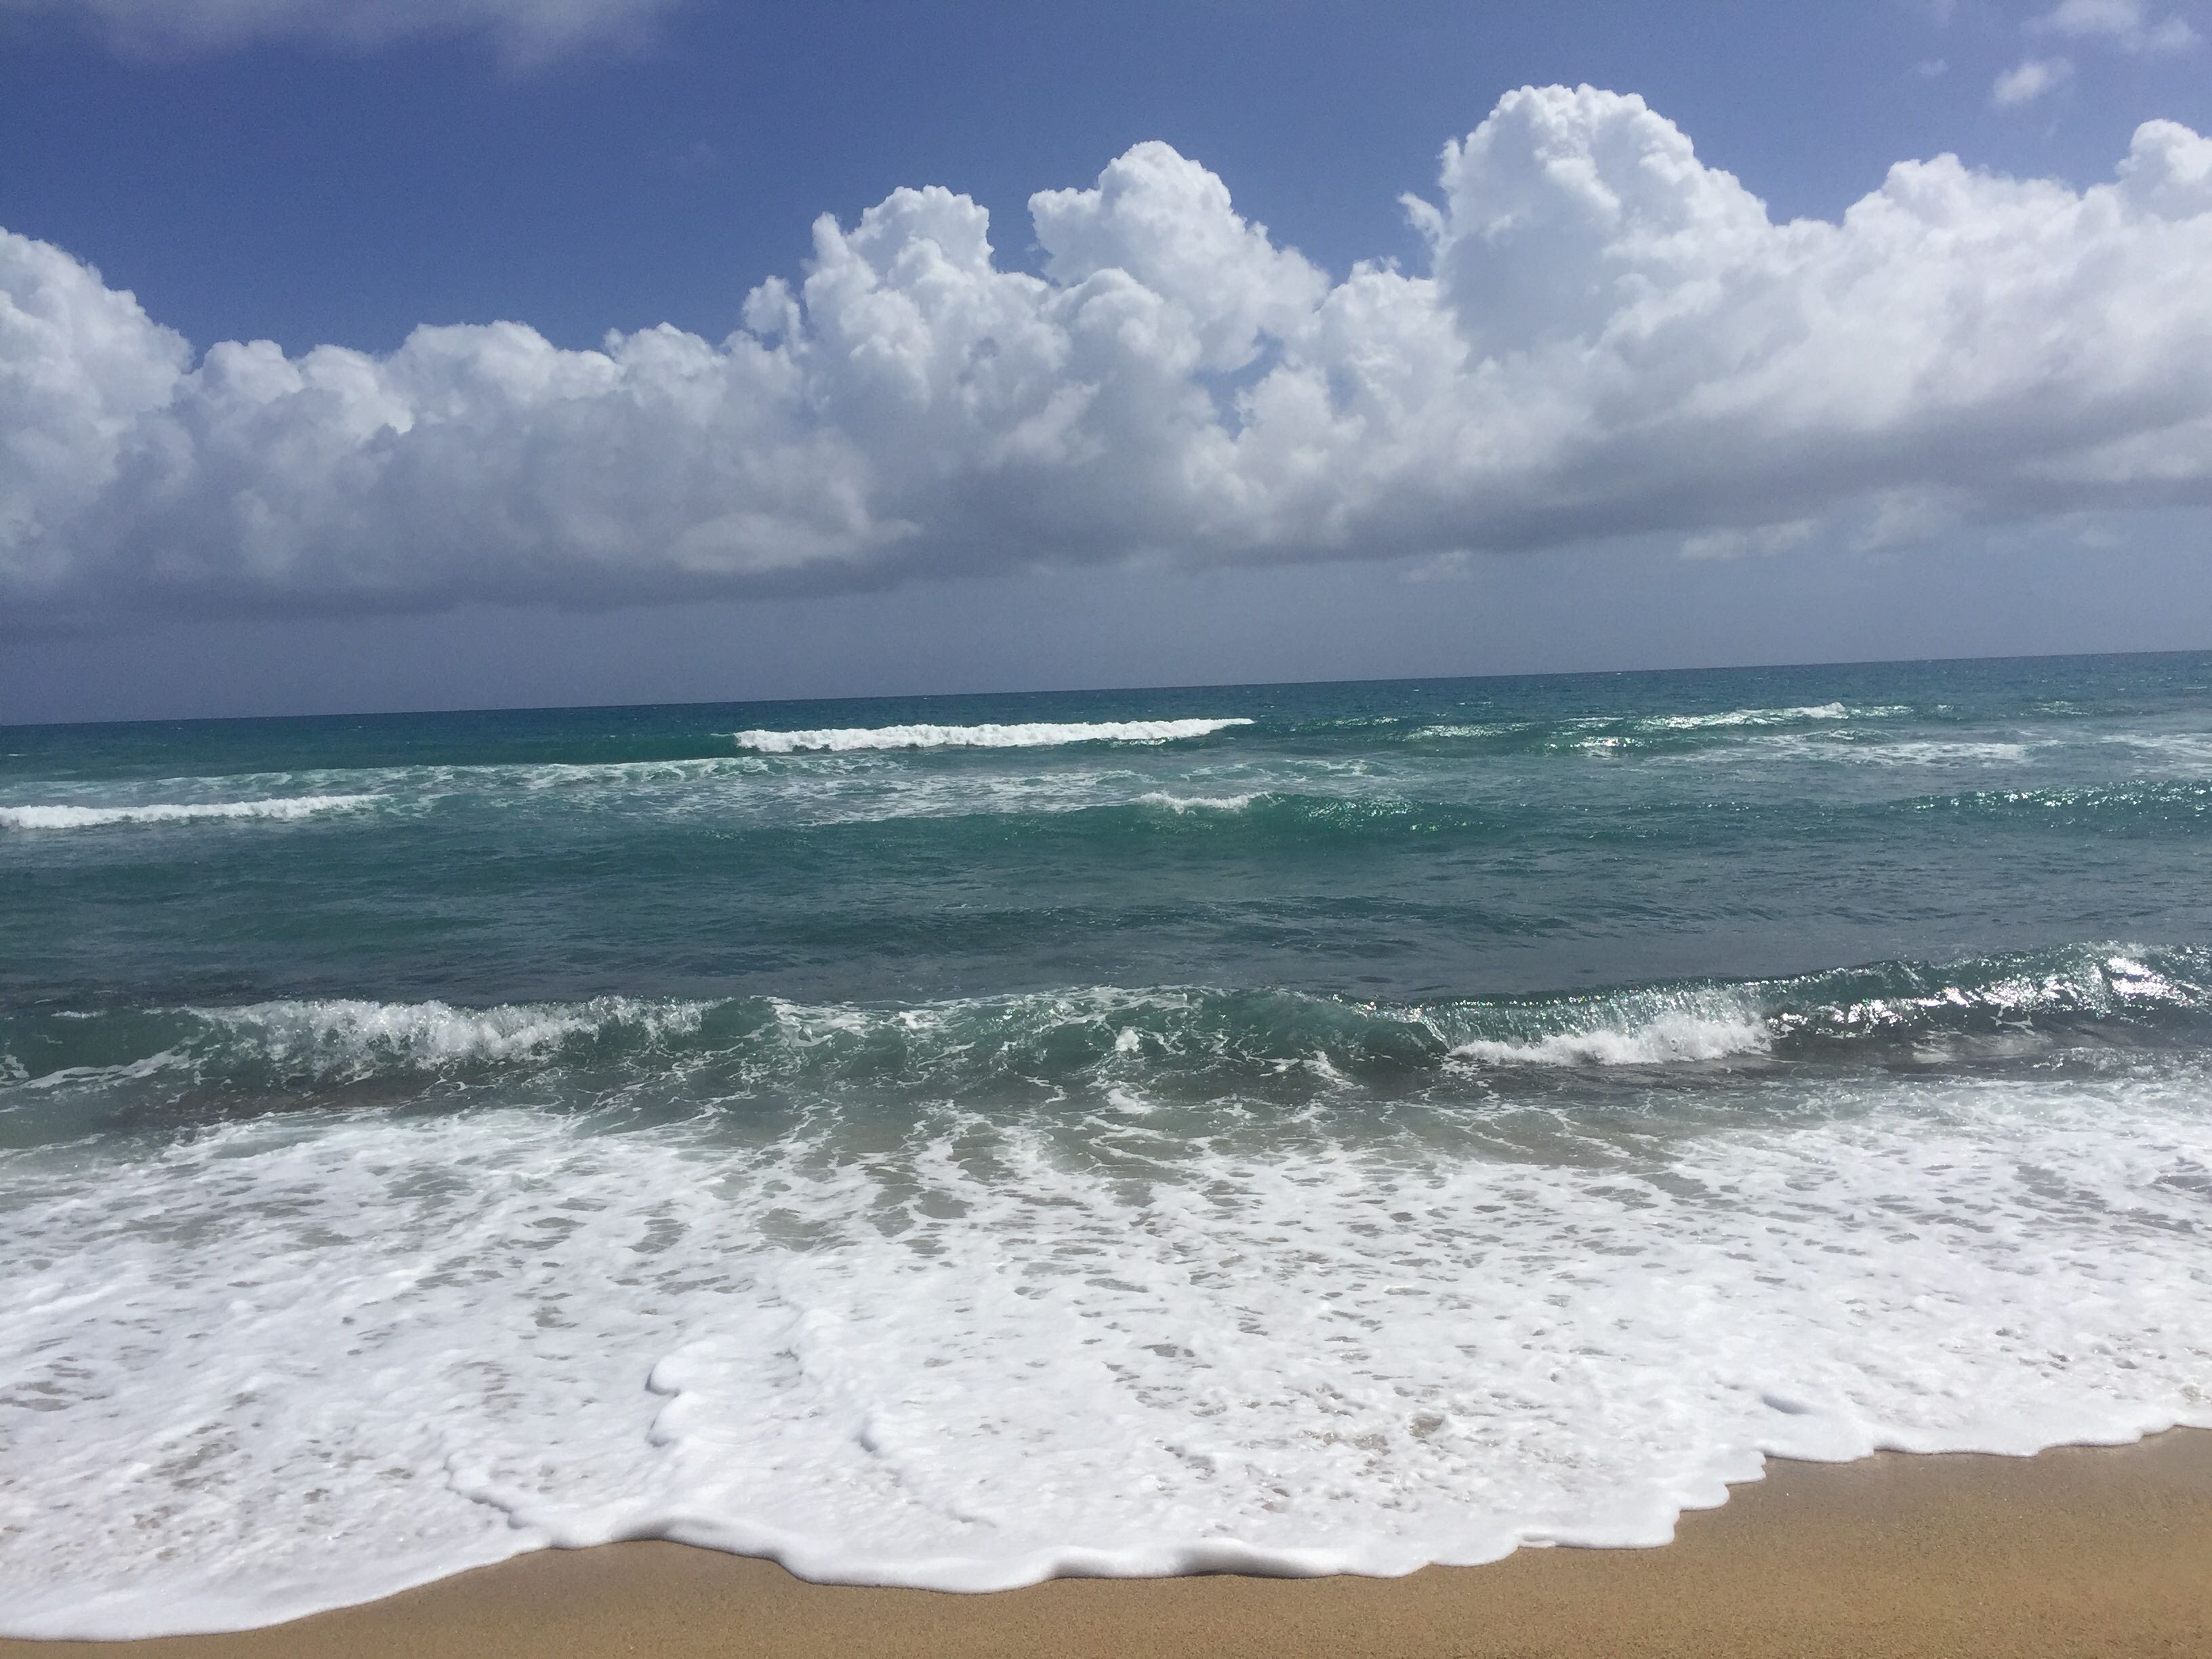 A beach in Puerto Rico. Photo by Dave Reid.